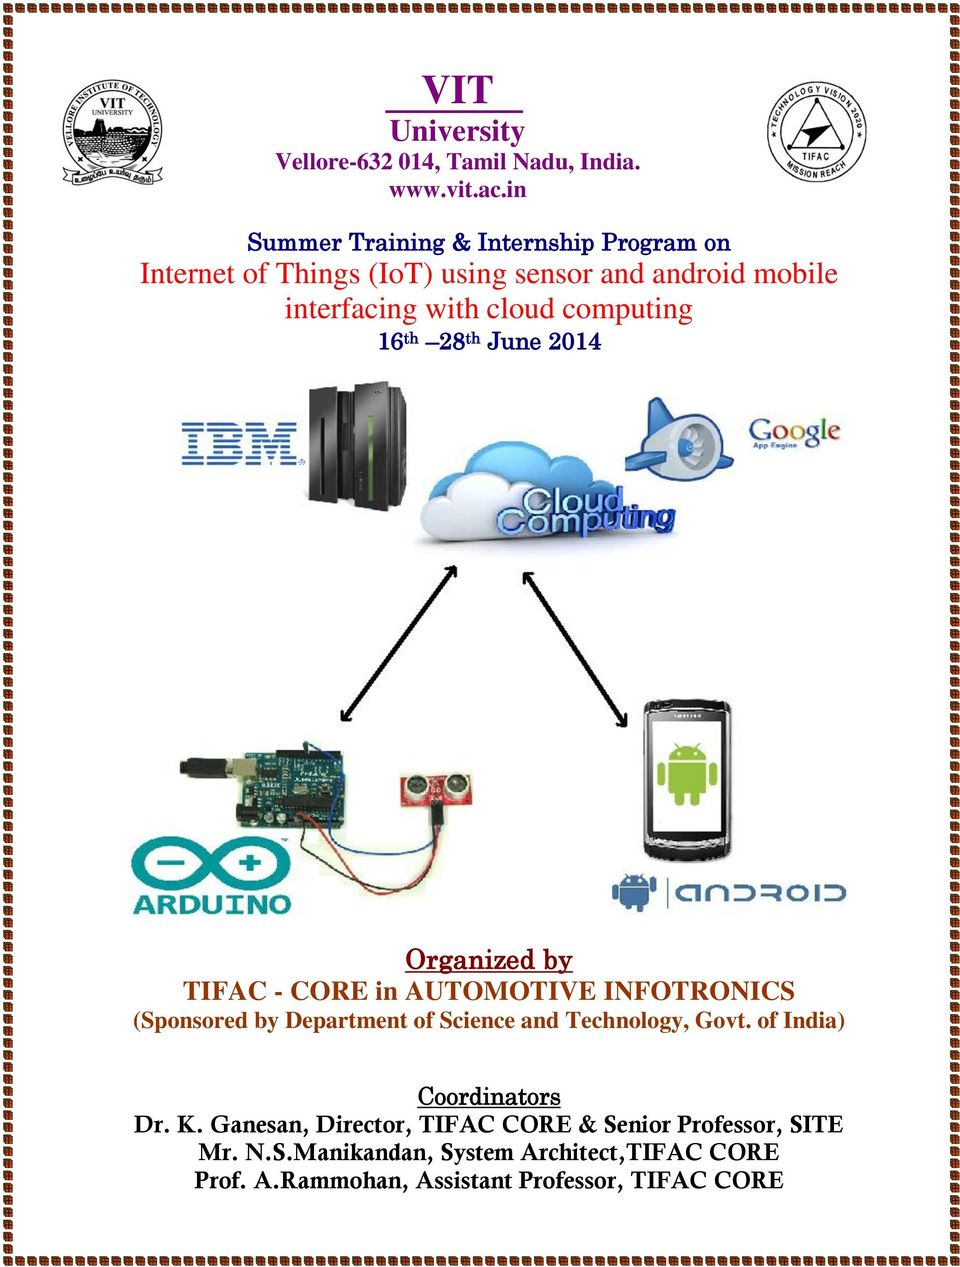 computing 16 th 28 th June 2014 Organized by TIFAC - CORE in AUTOMOTIVE INFOTRONICS (Sponsored by Department of Science and